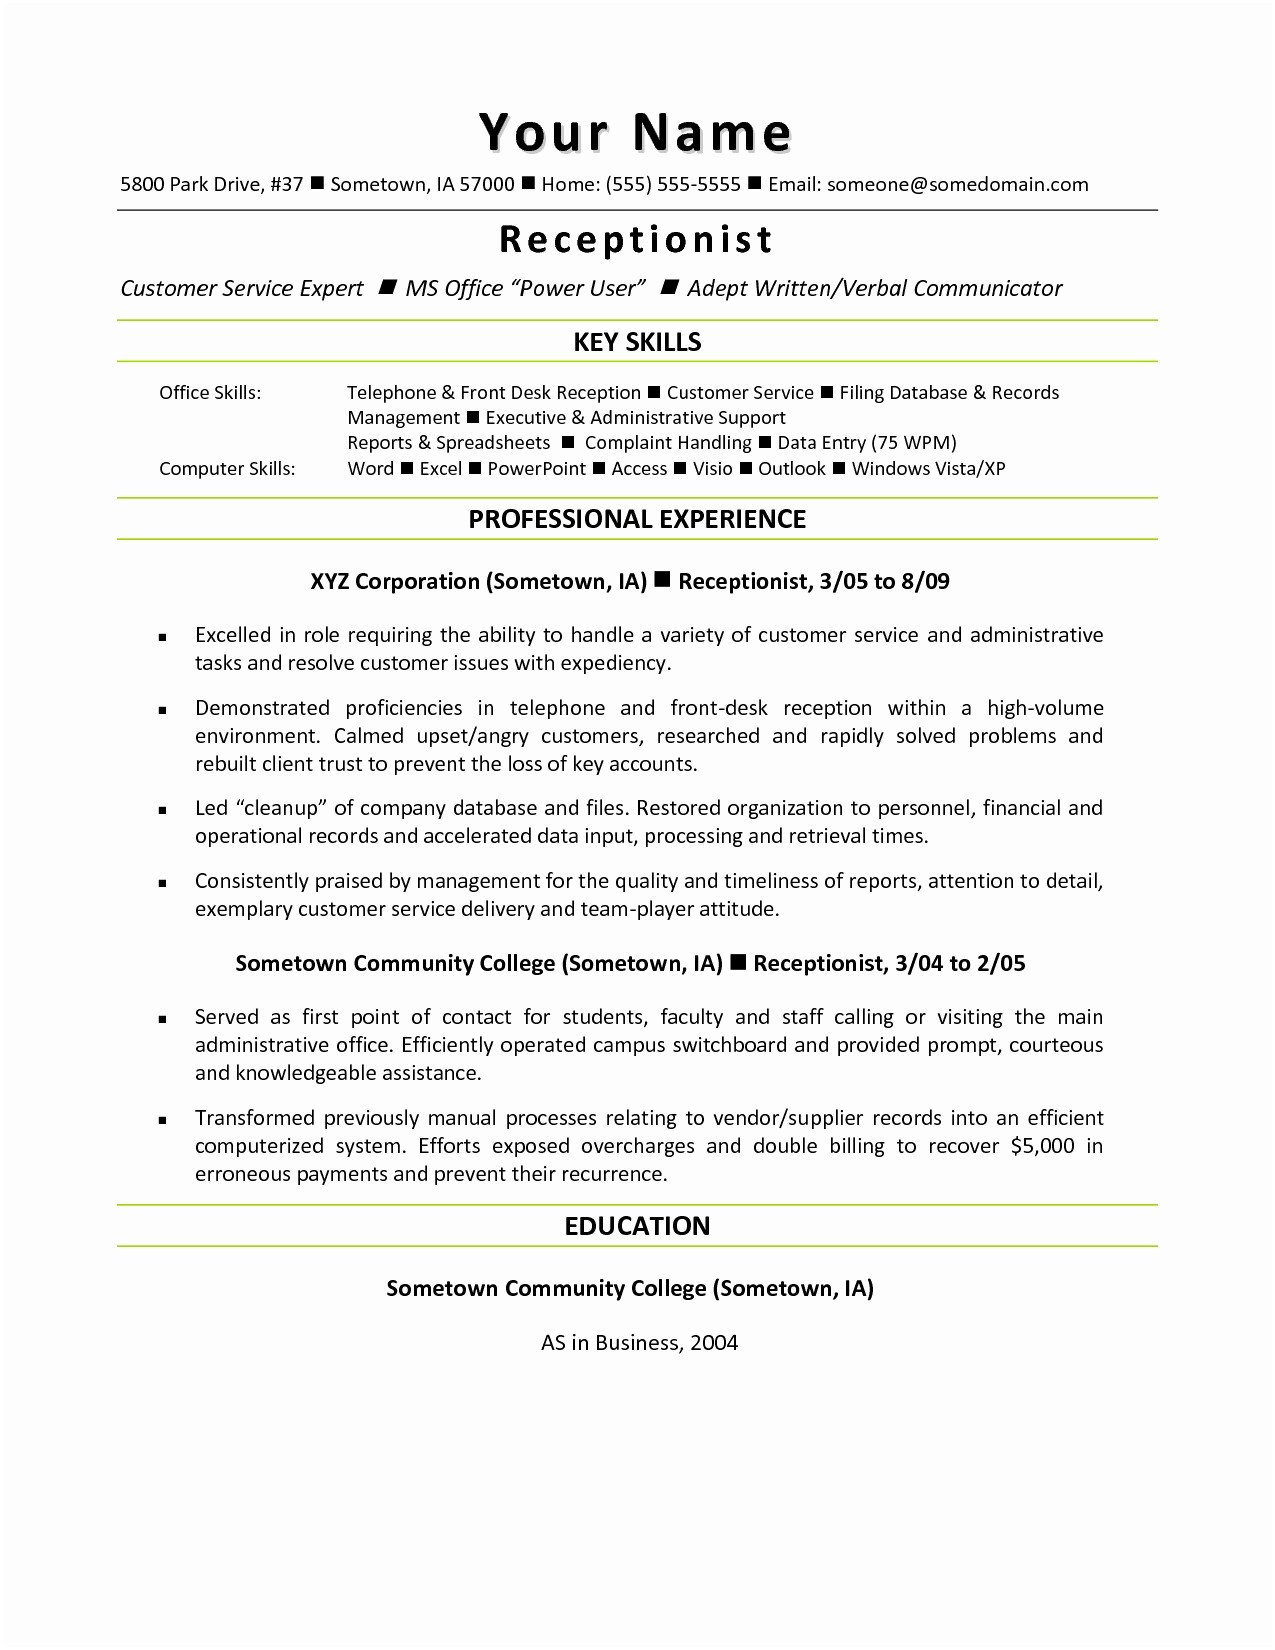 Finance Cover Letter Template - Microsoft Template Resume Simple Resume Mail format Sample Fresh